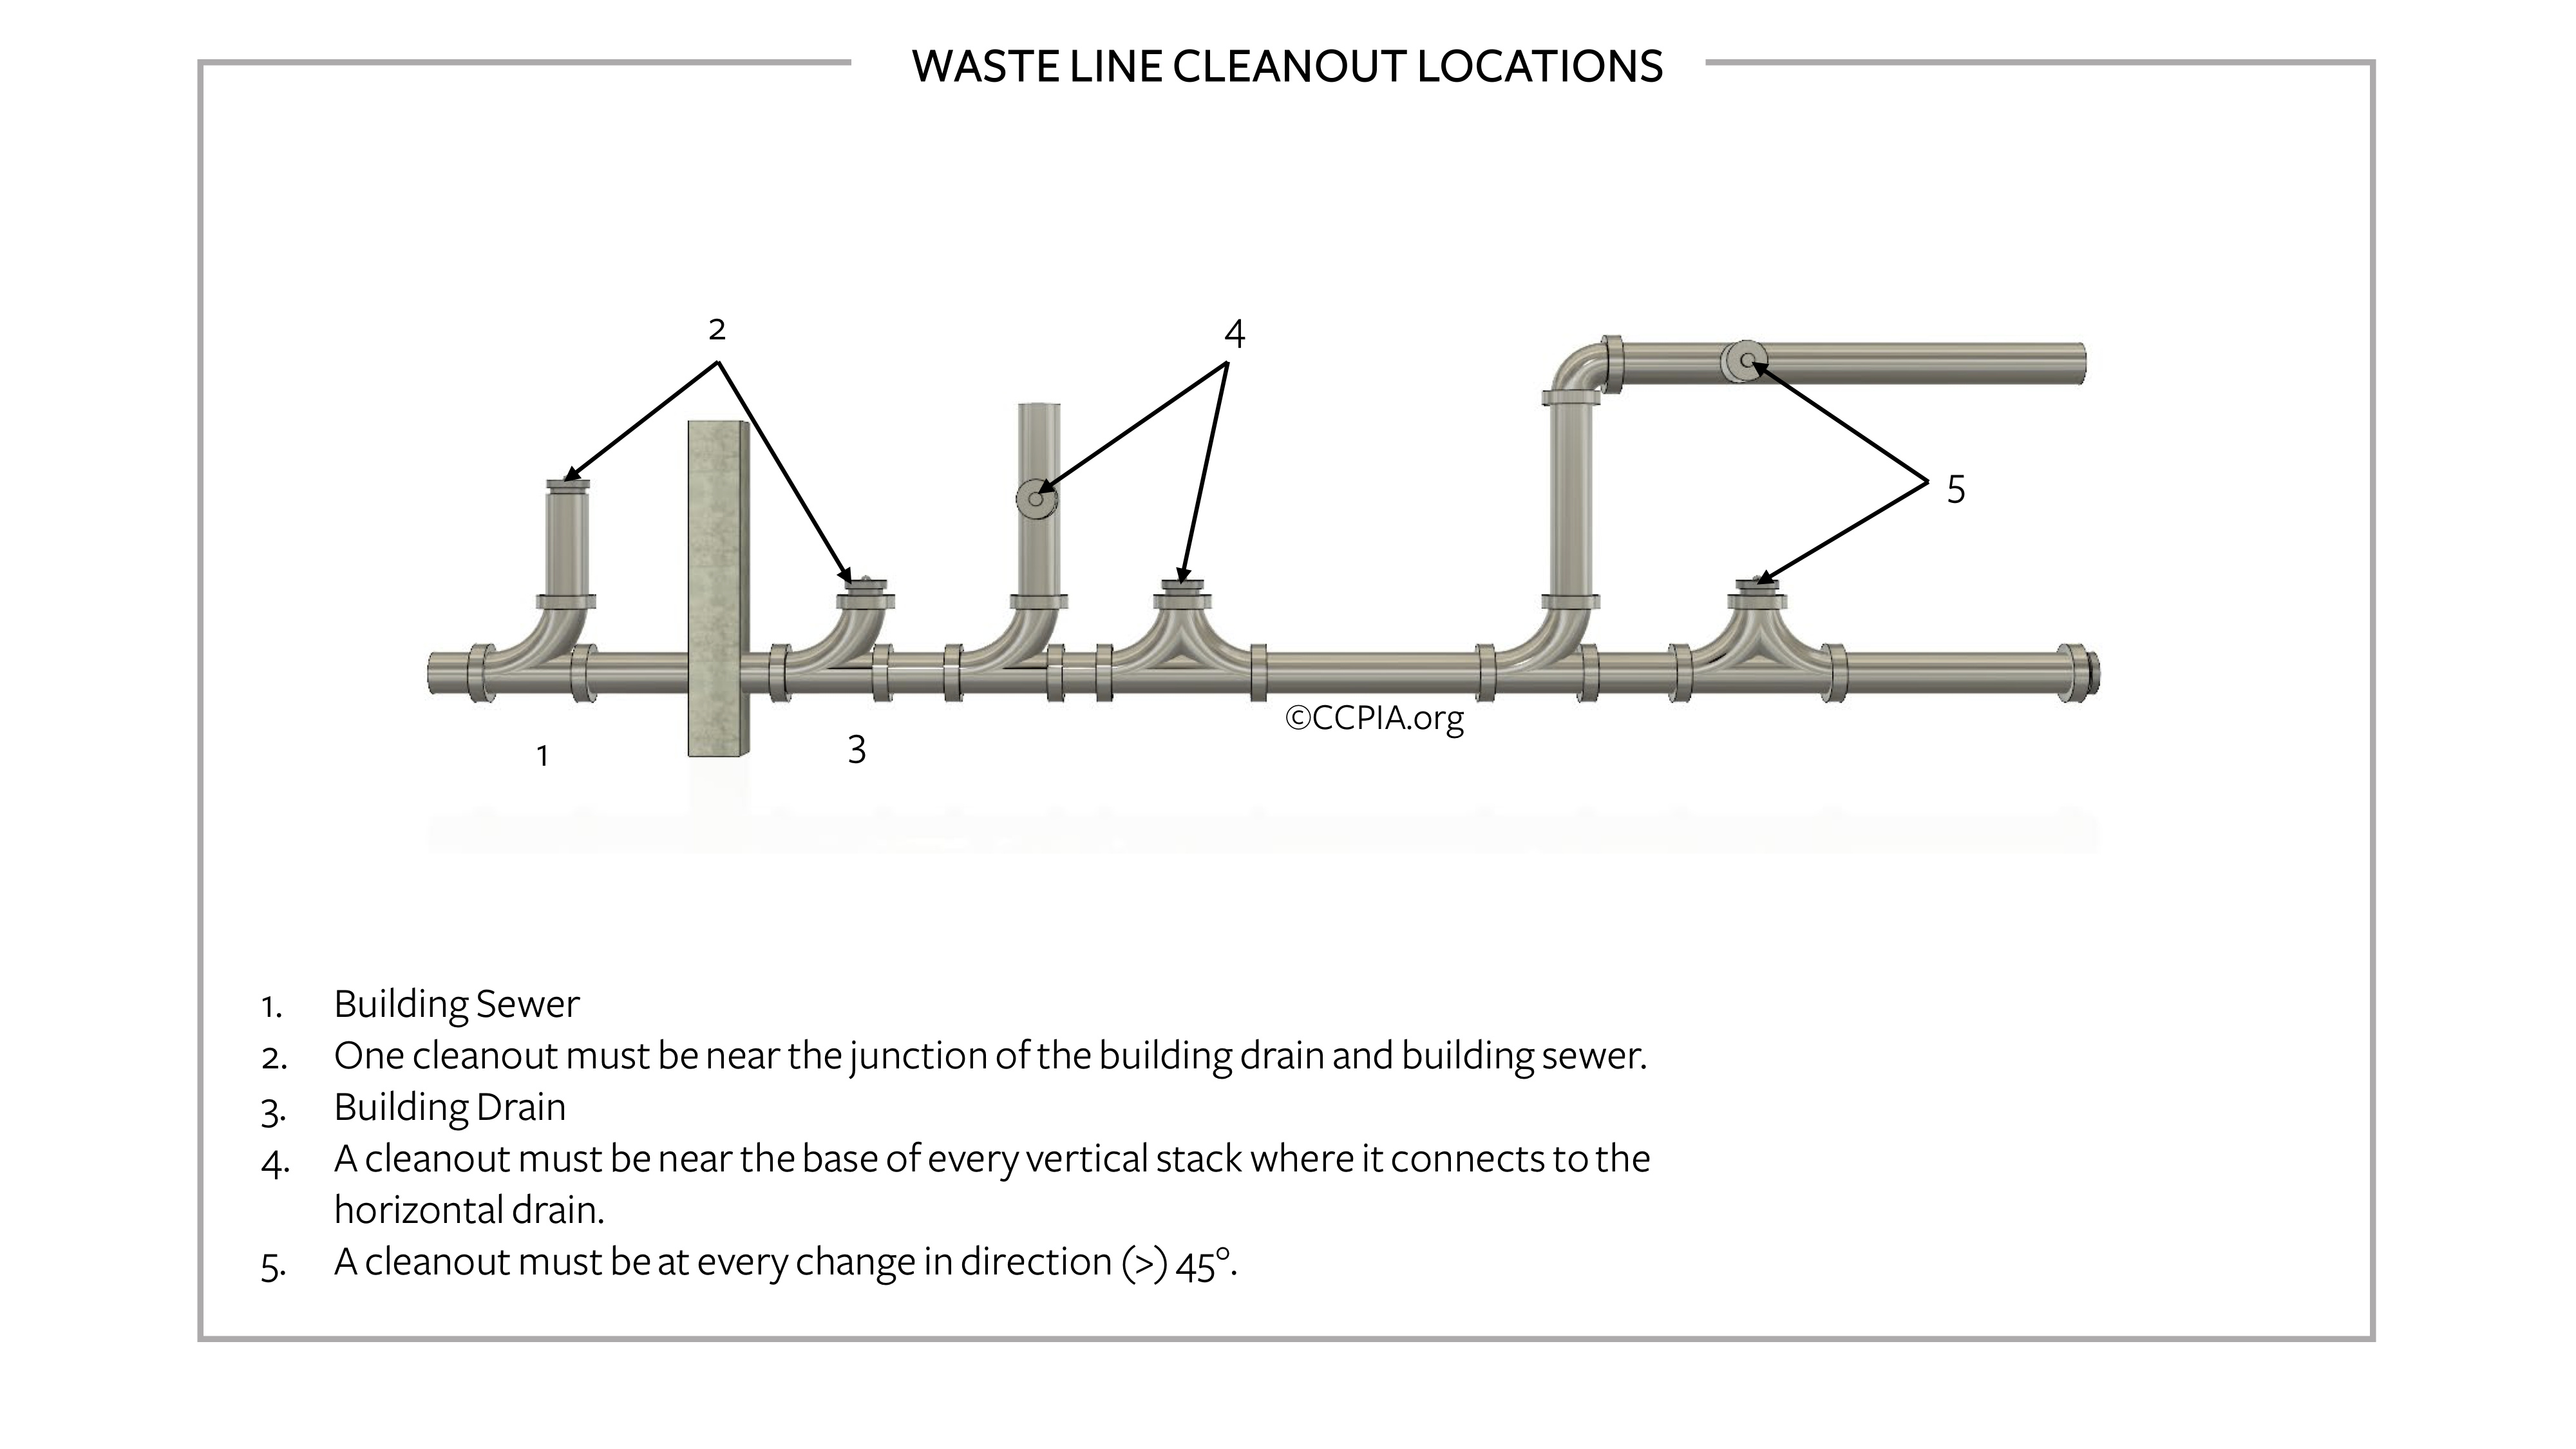 Waste line cleanout locations in a commercial building.